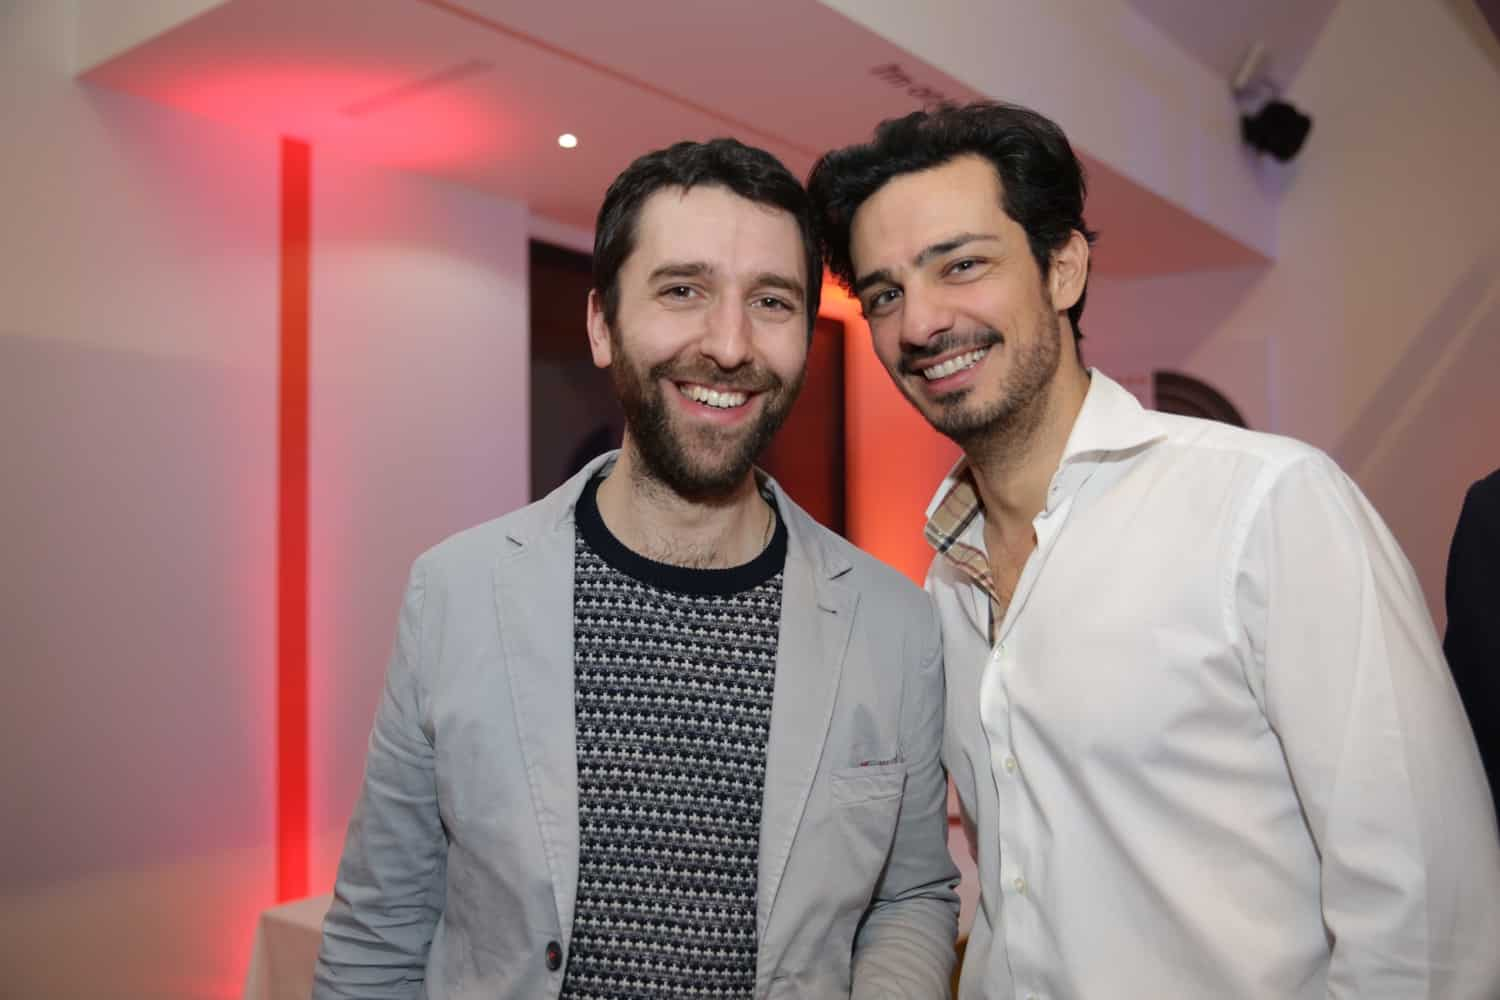 Two men smiling for a photo